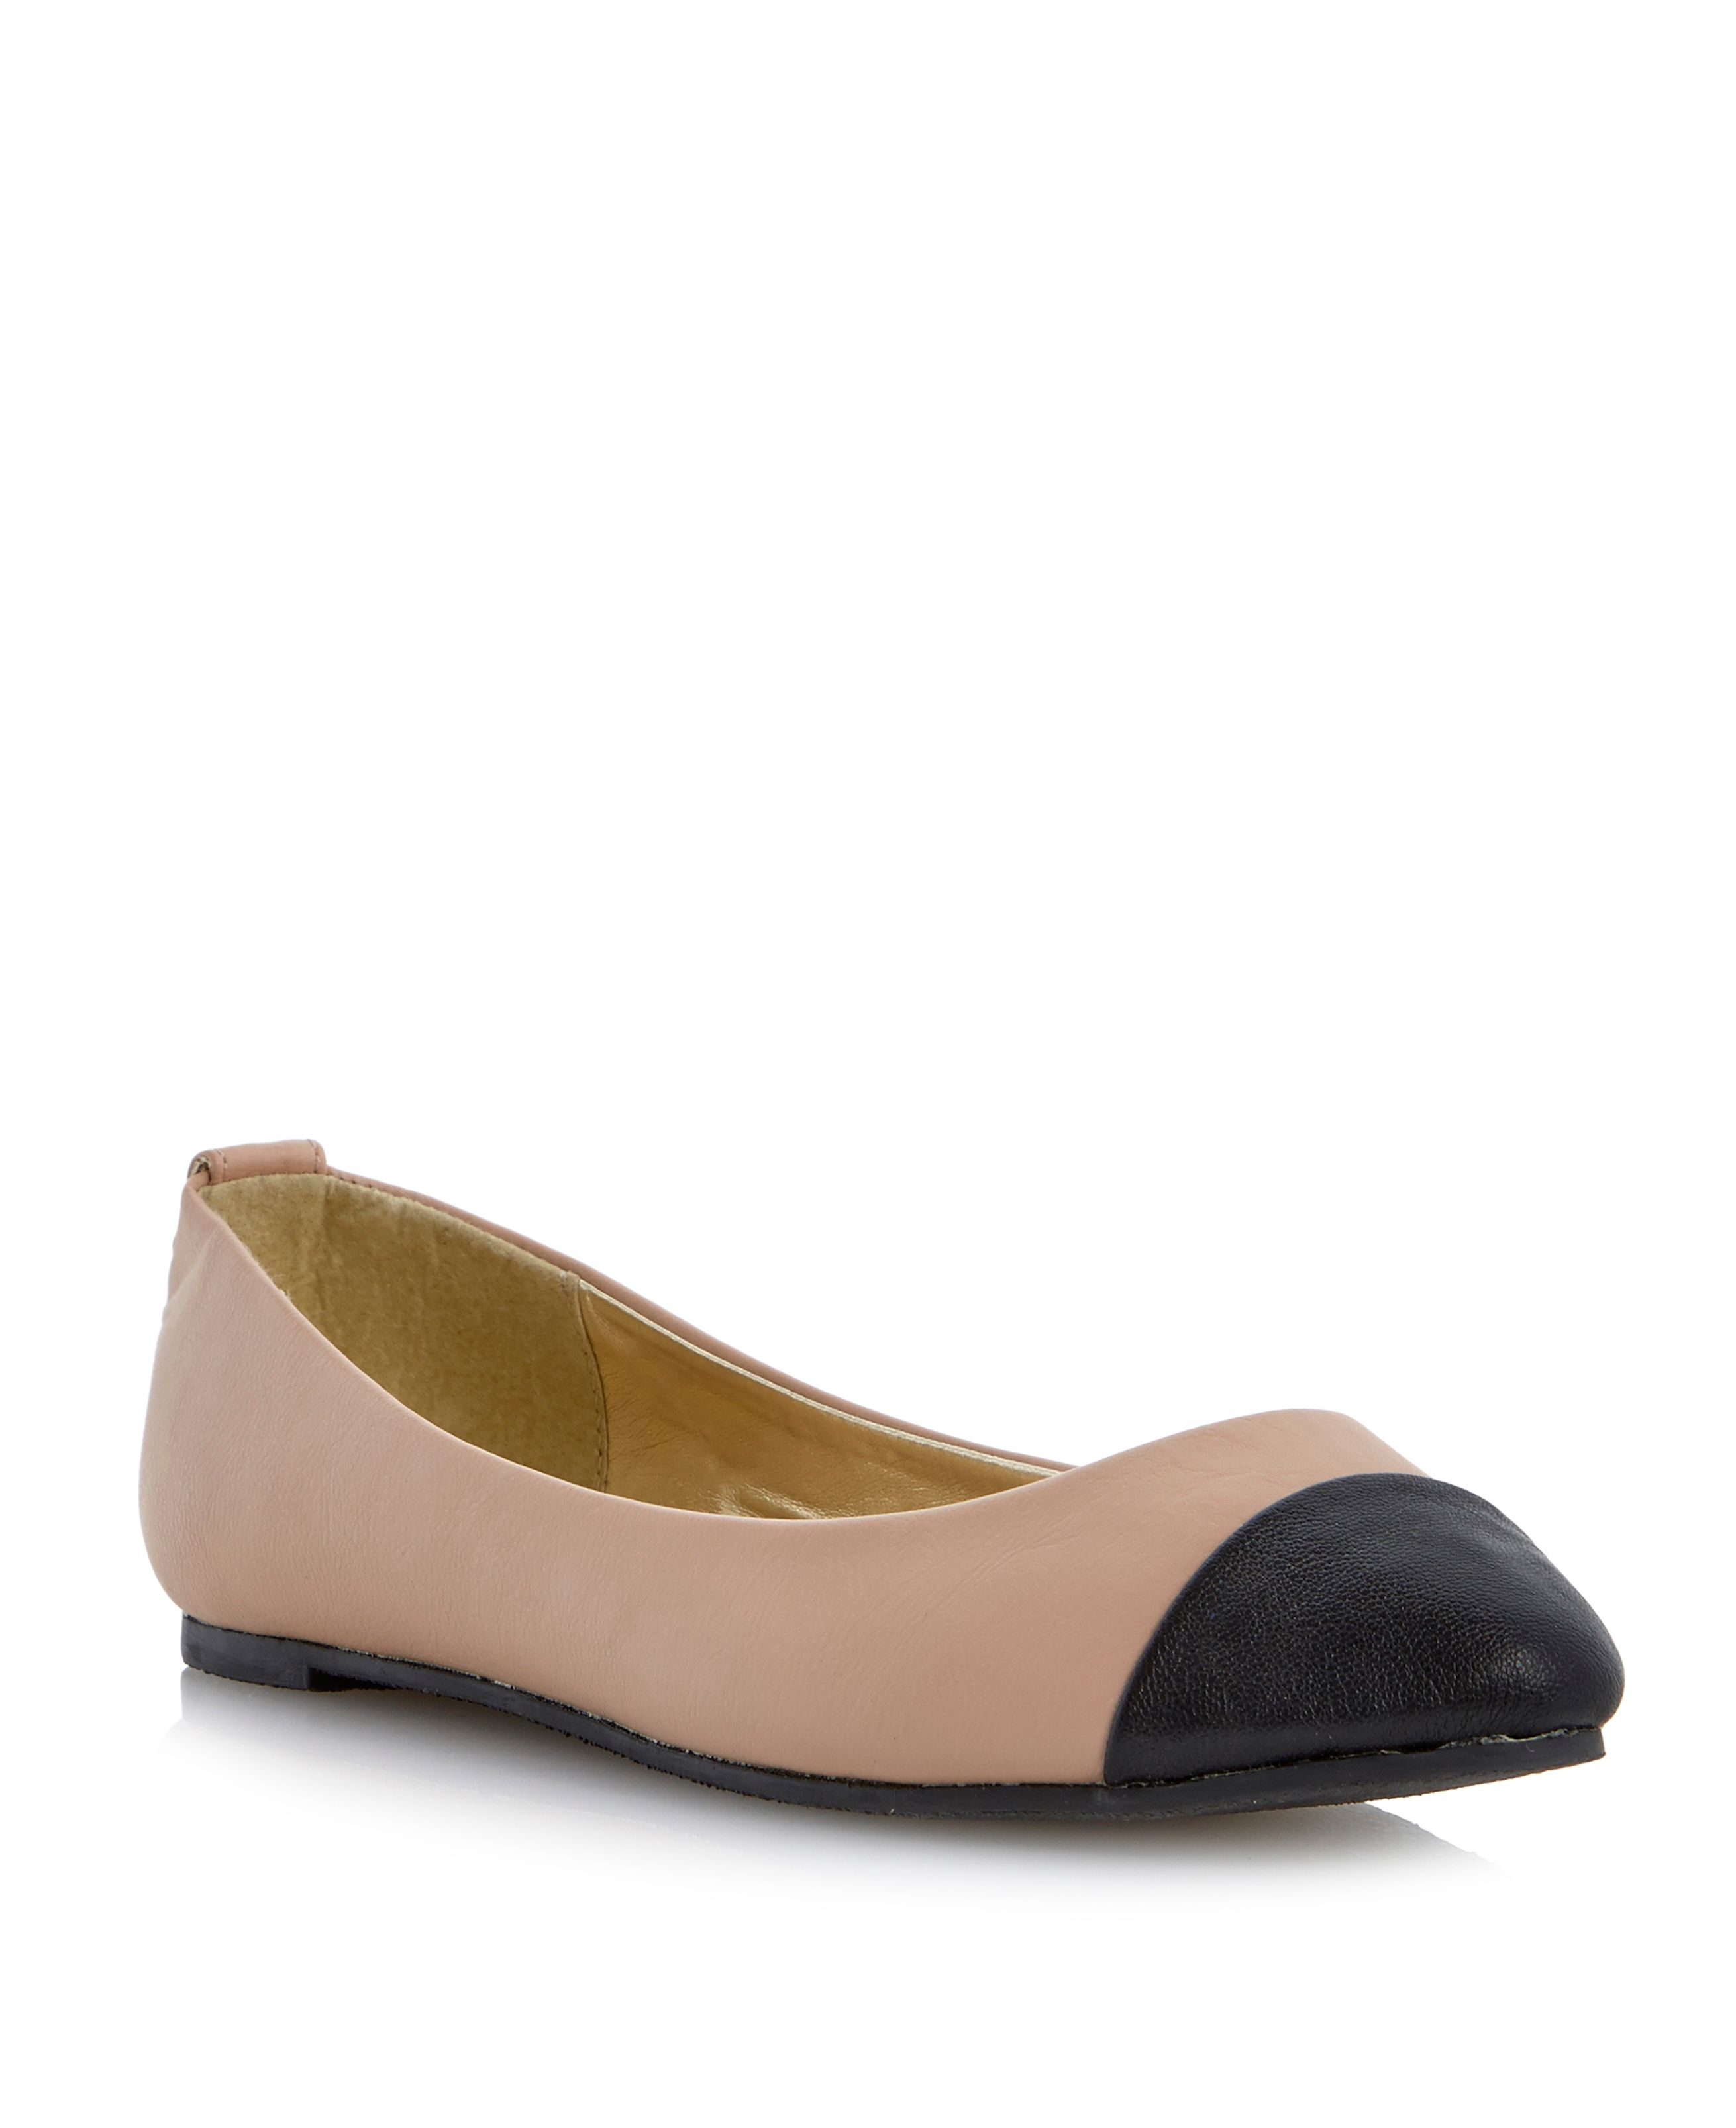 Megan almond toe ballerina shoes